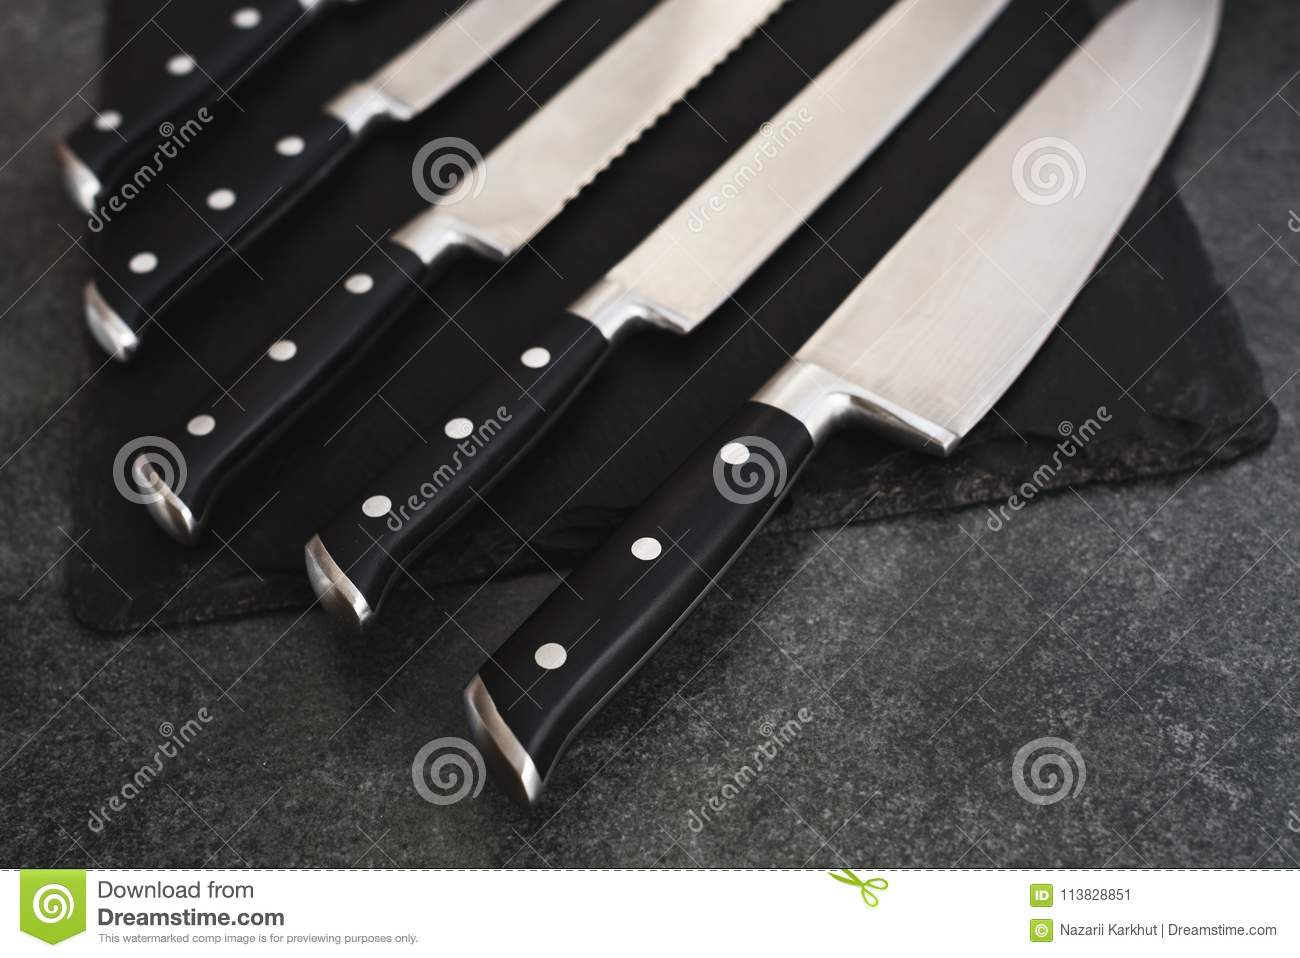 good set of kitchen knives a good set of kitchen knives for slicing stock image image of blacksmith kitchen 113828851 9189